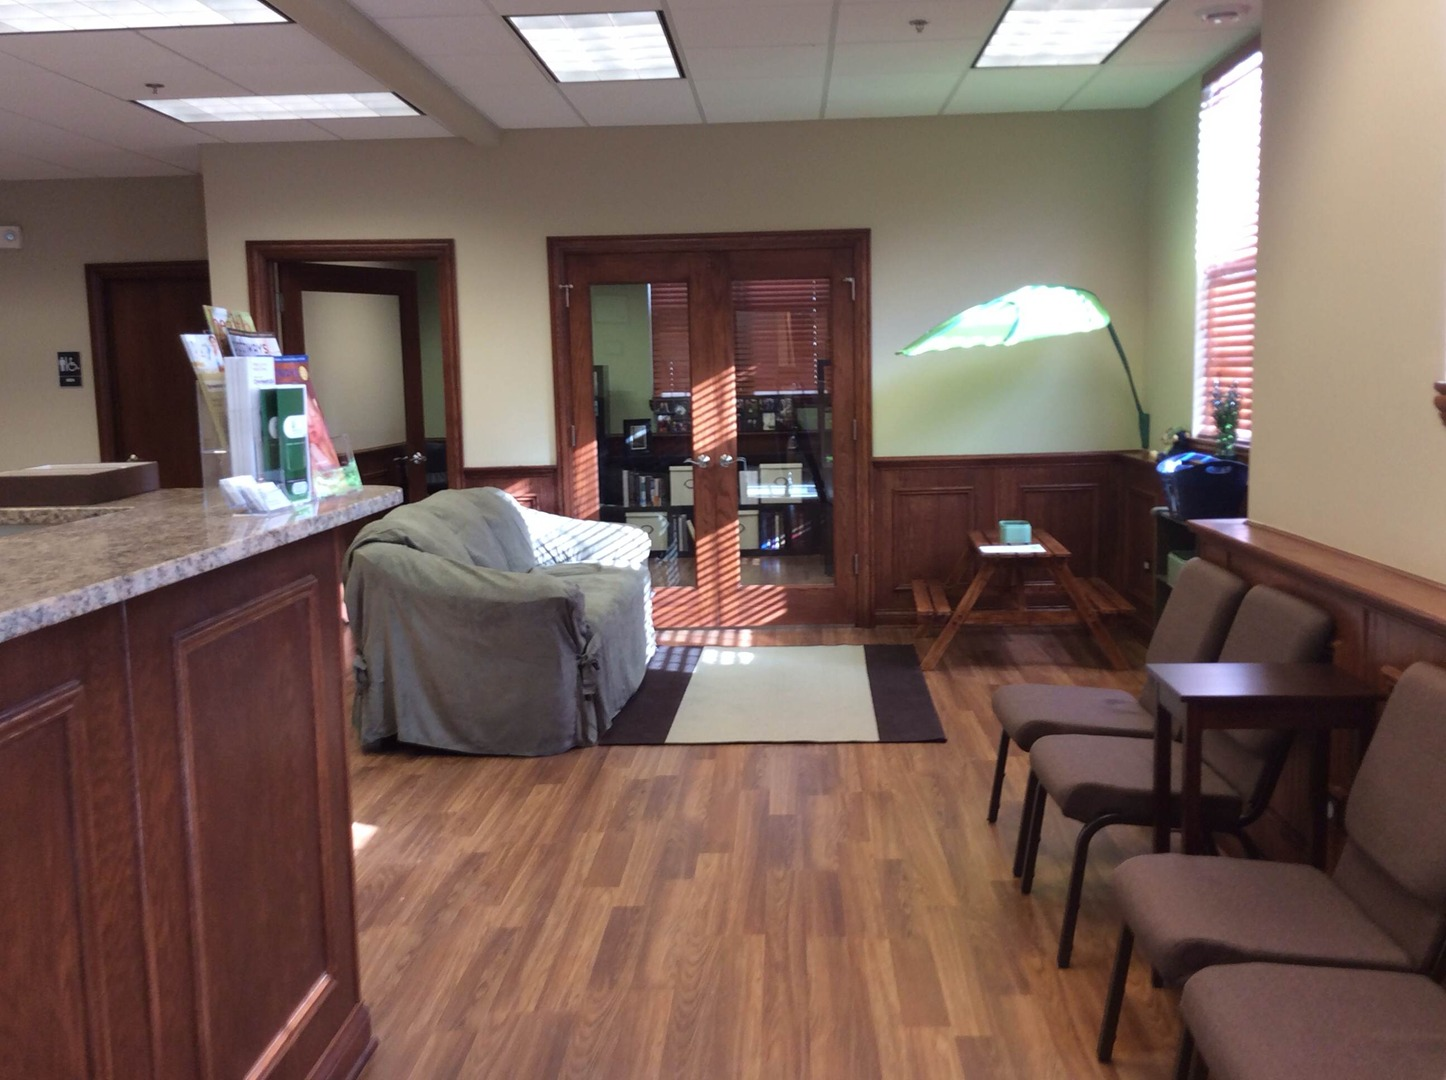 Chiropractic reception area